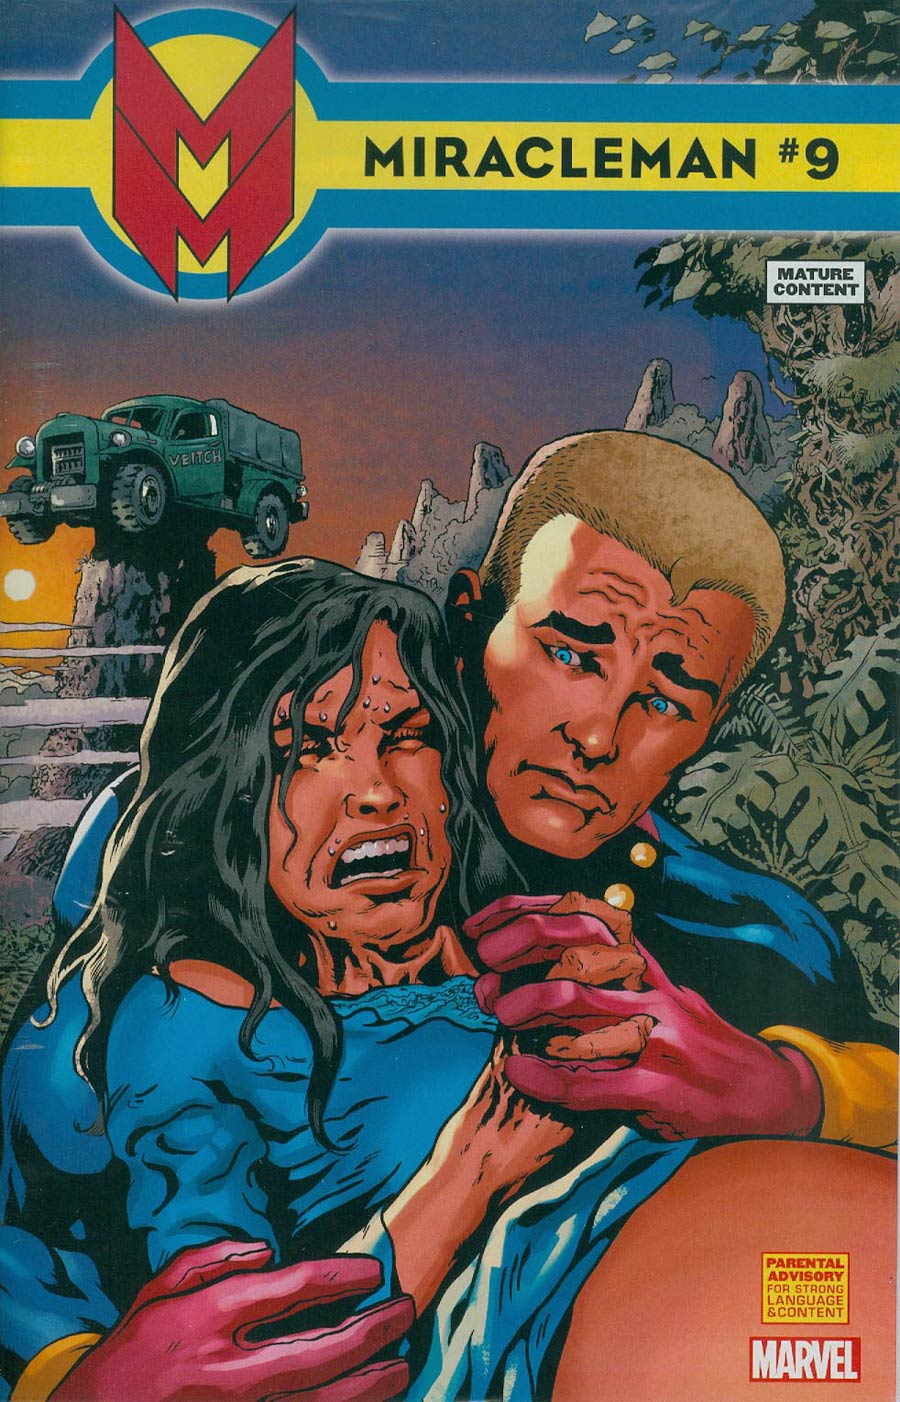 Miracleman (Marvel) #9 Cover A Regular Rick Veitch Cover With Polybag